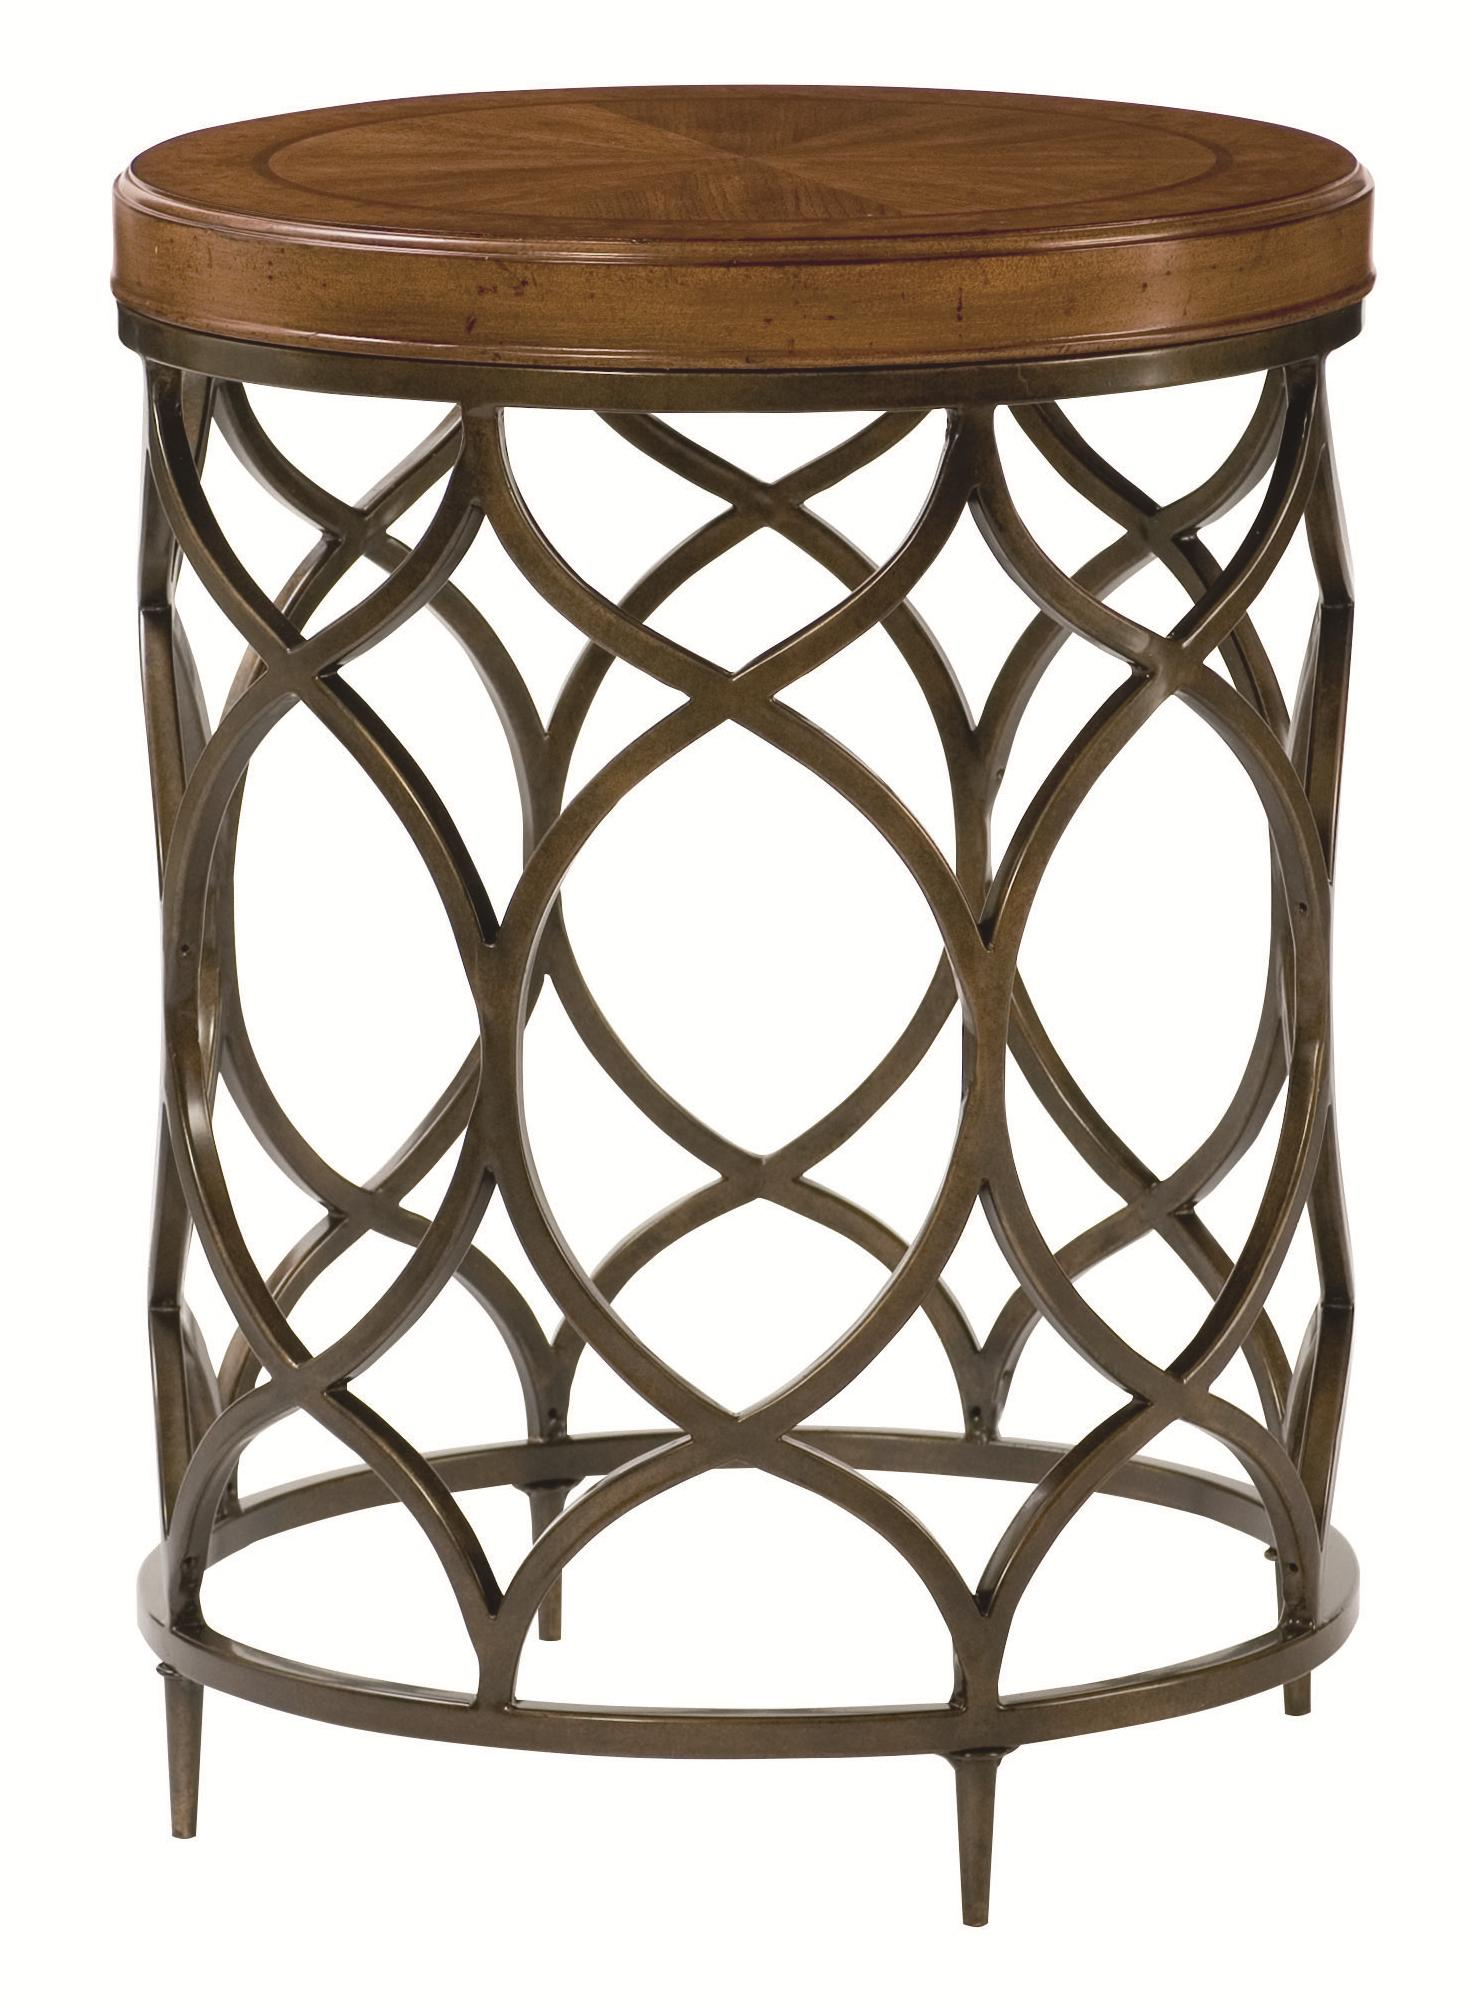 hammary hidden treasures round lamp table with decorative home goods accent lamps perched bird bronze console behind couch small cherry side heavy duty drum throne pottery barn